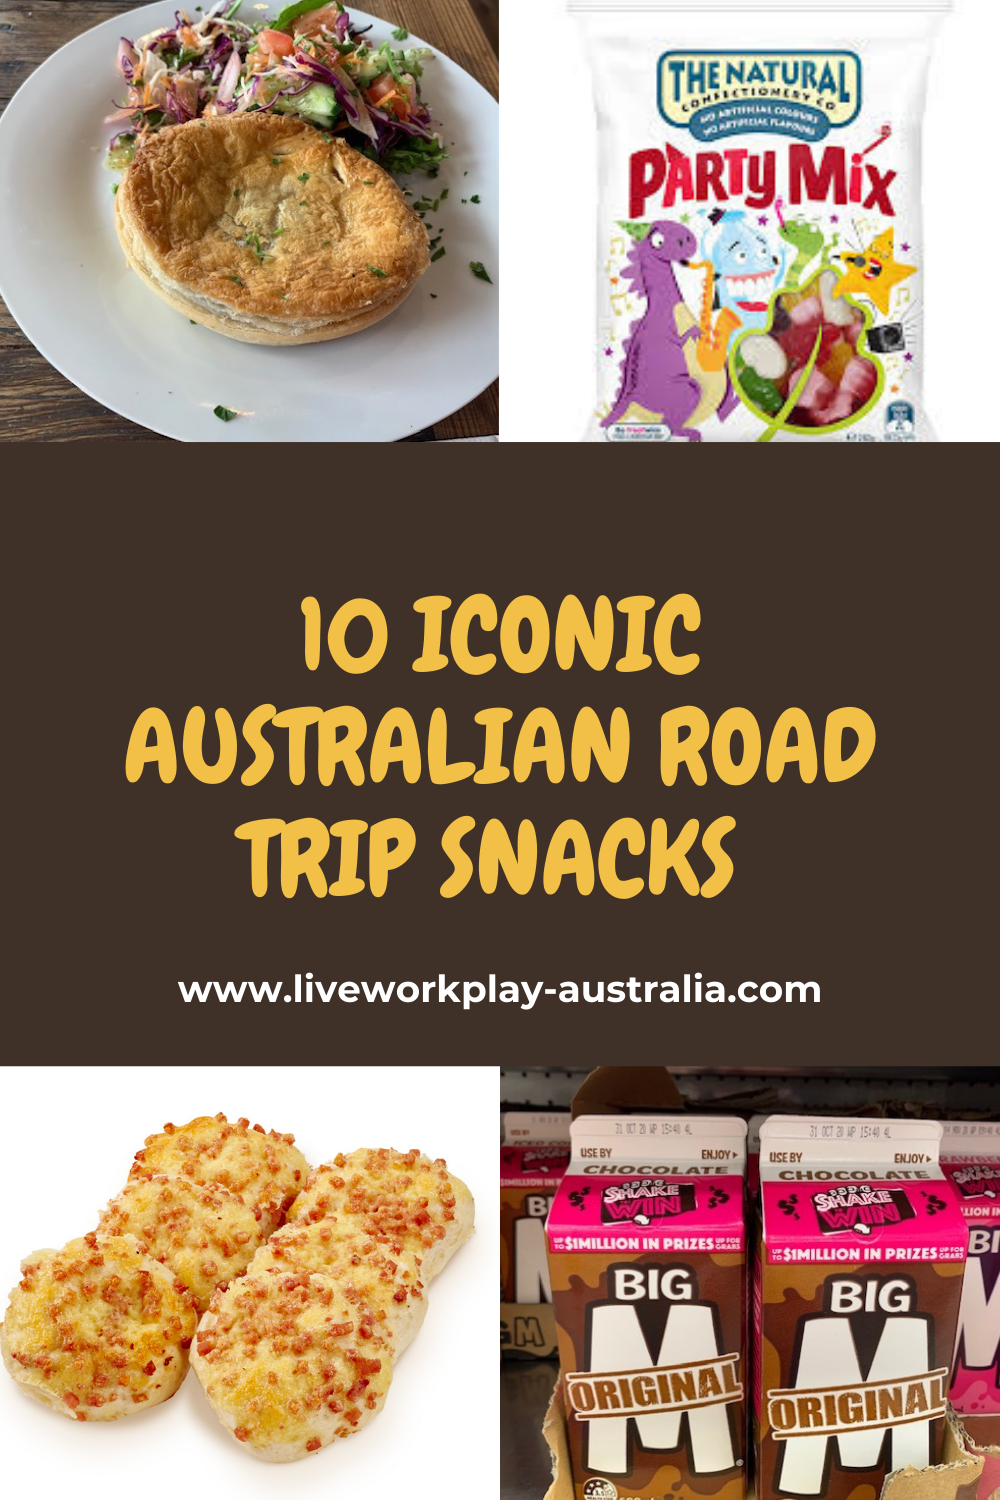 Pinterest Pin. Iconic Australian Road Trip Food. Cheese and Bacon Rolls. Chocolate Milk. Pie. Party Mix.